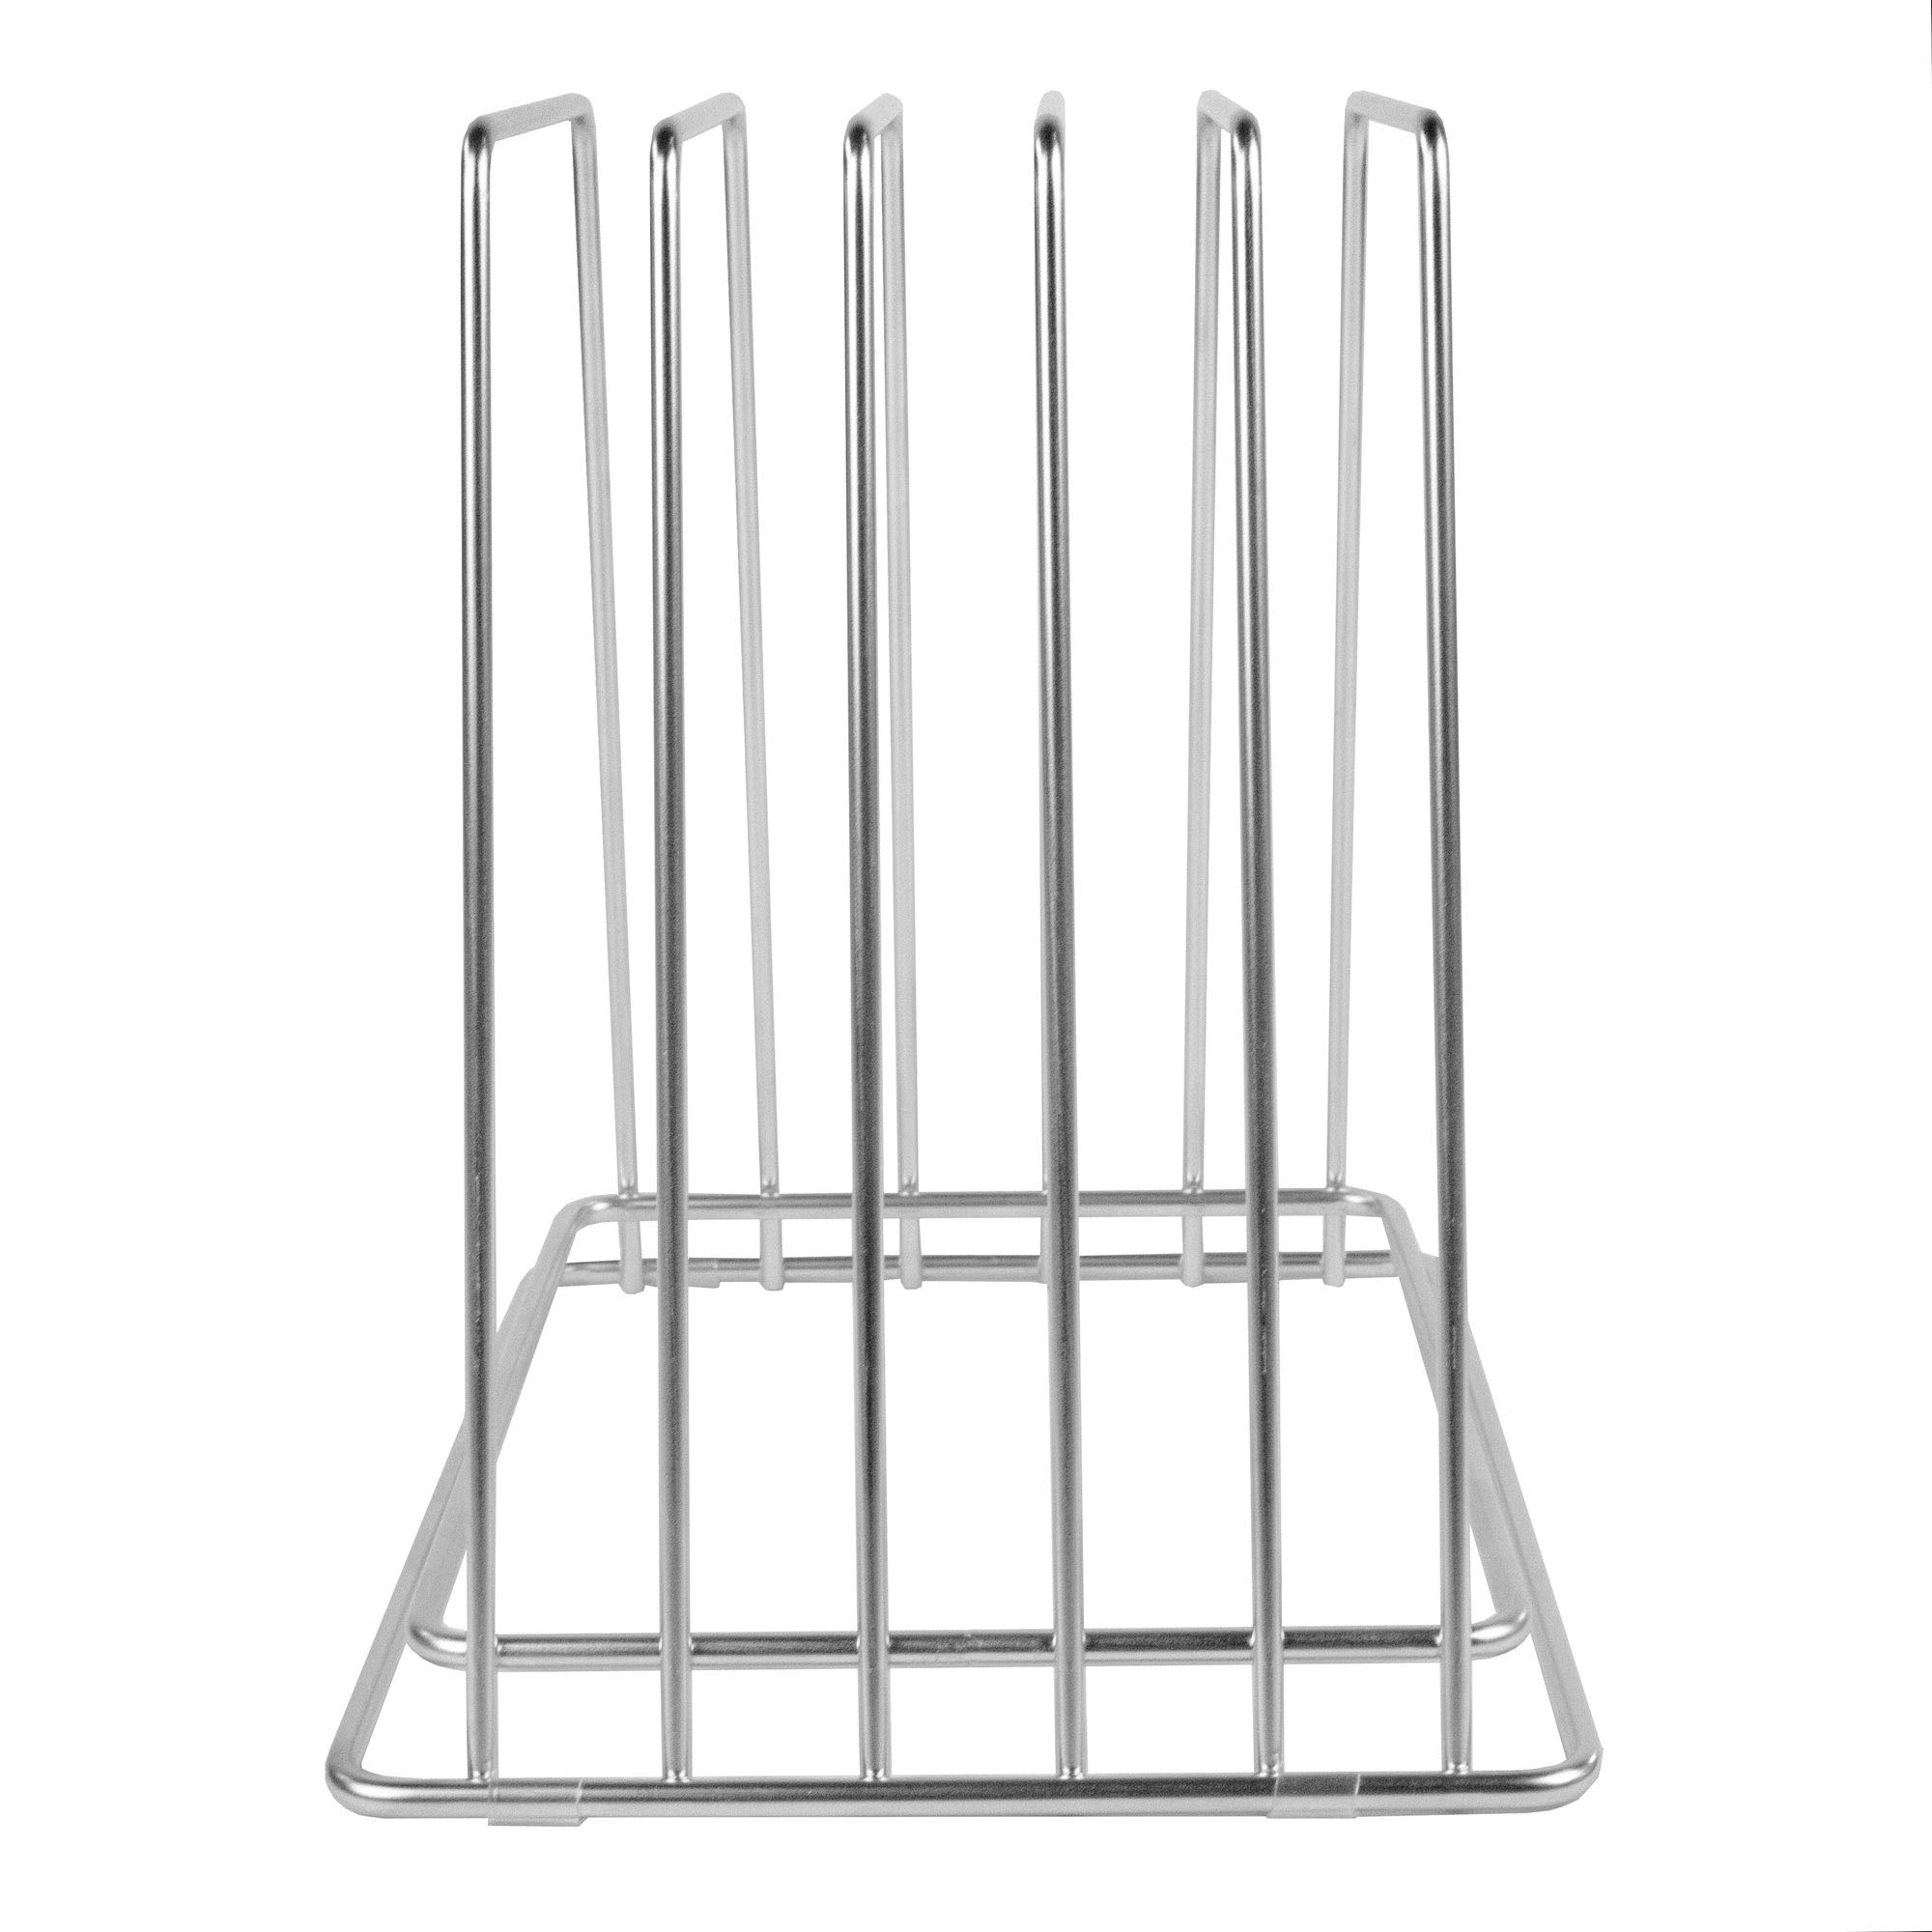 Professional Kitchen Cutting Board Organizer, Stainless Steel Rack NSF Fits Baking Sheets by Thirteen Chefs